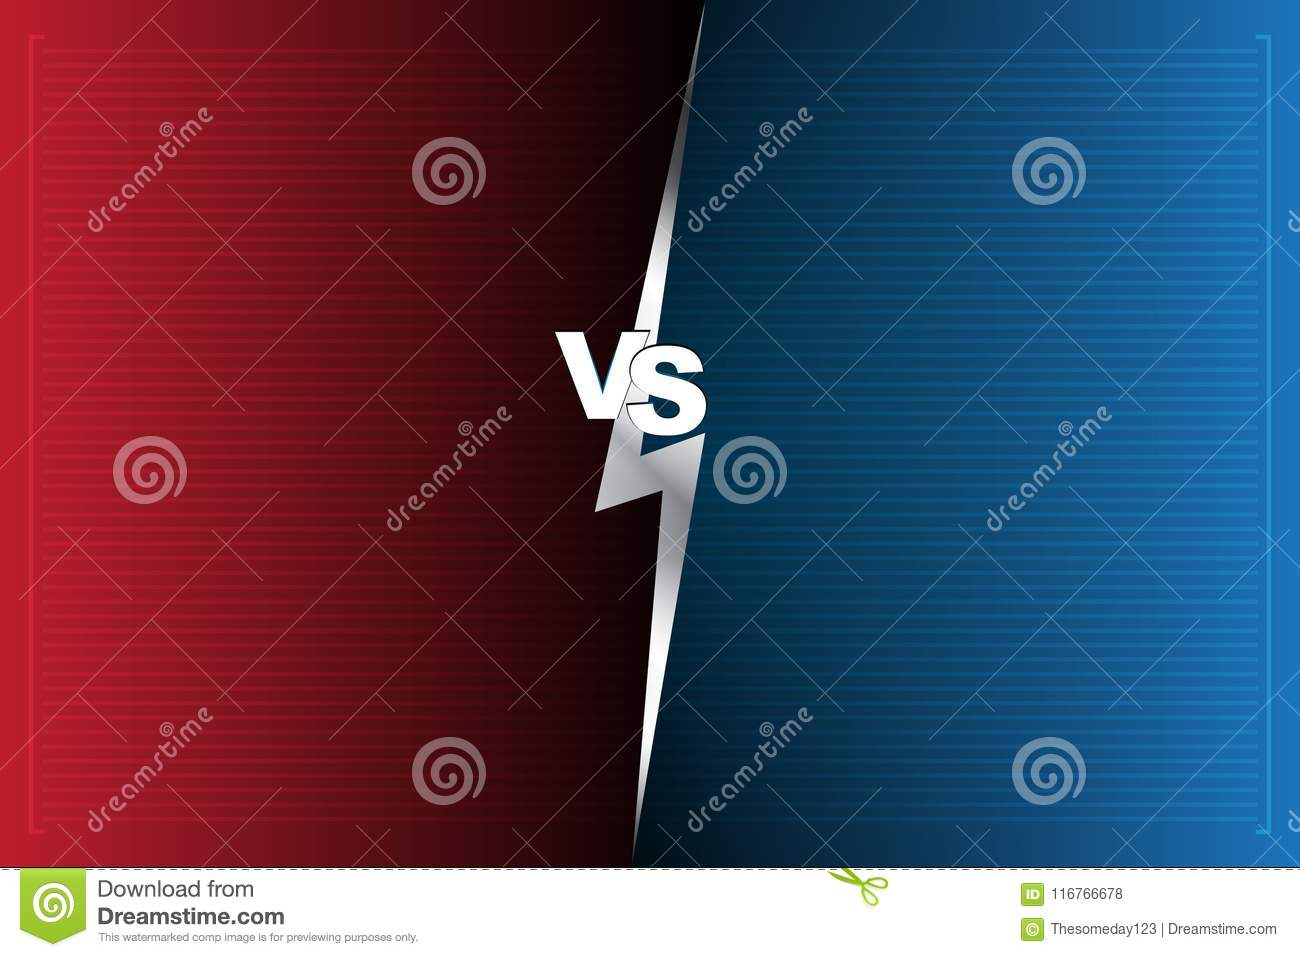 Abstract Background versus screen Red and blue VS letters